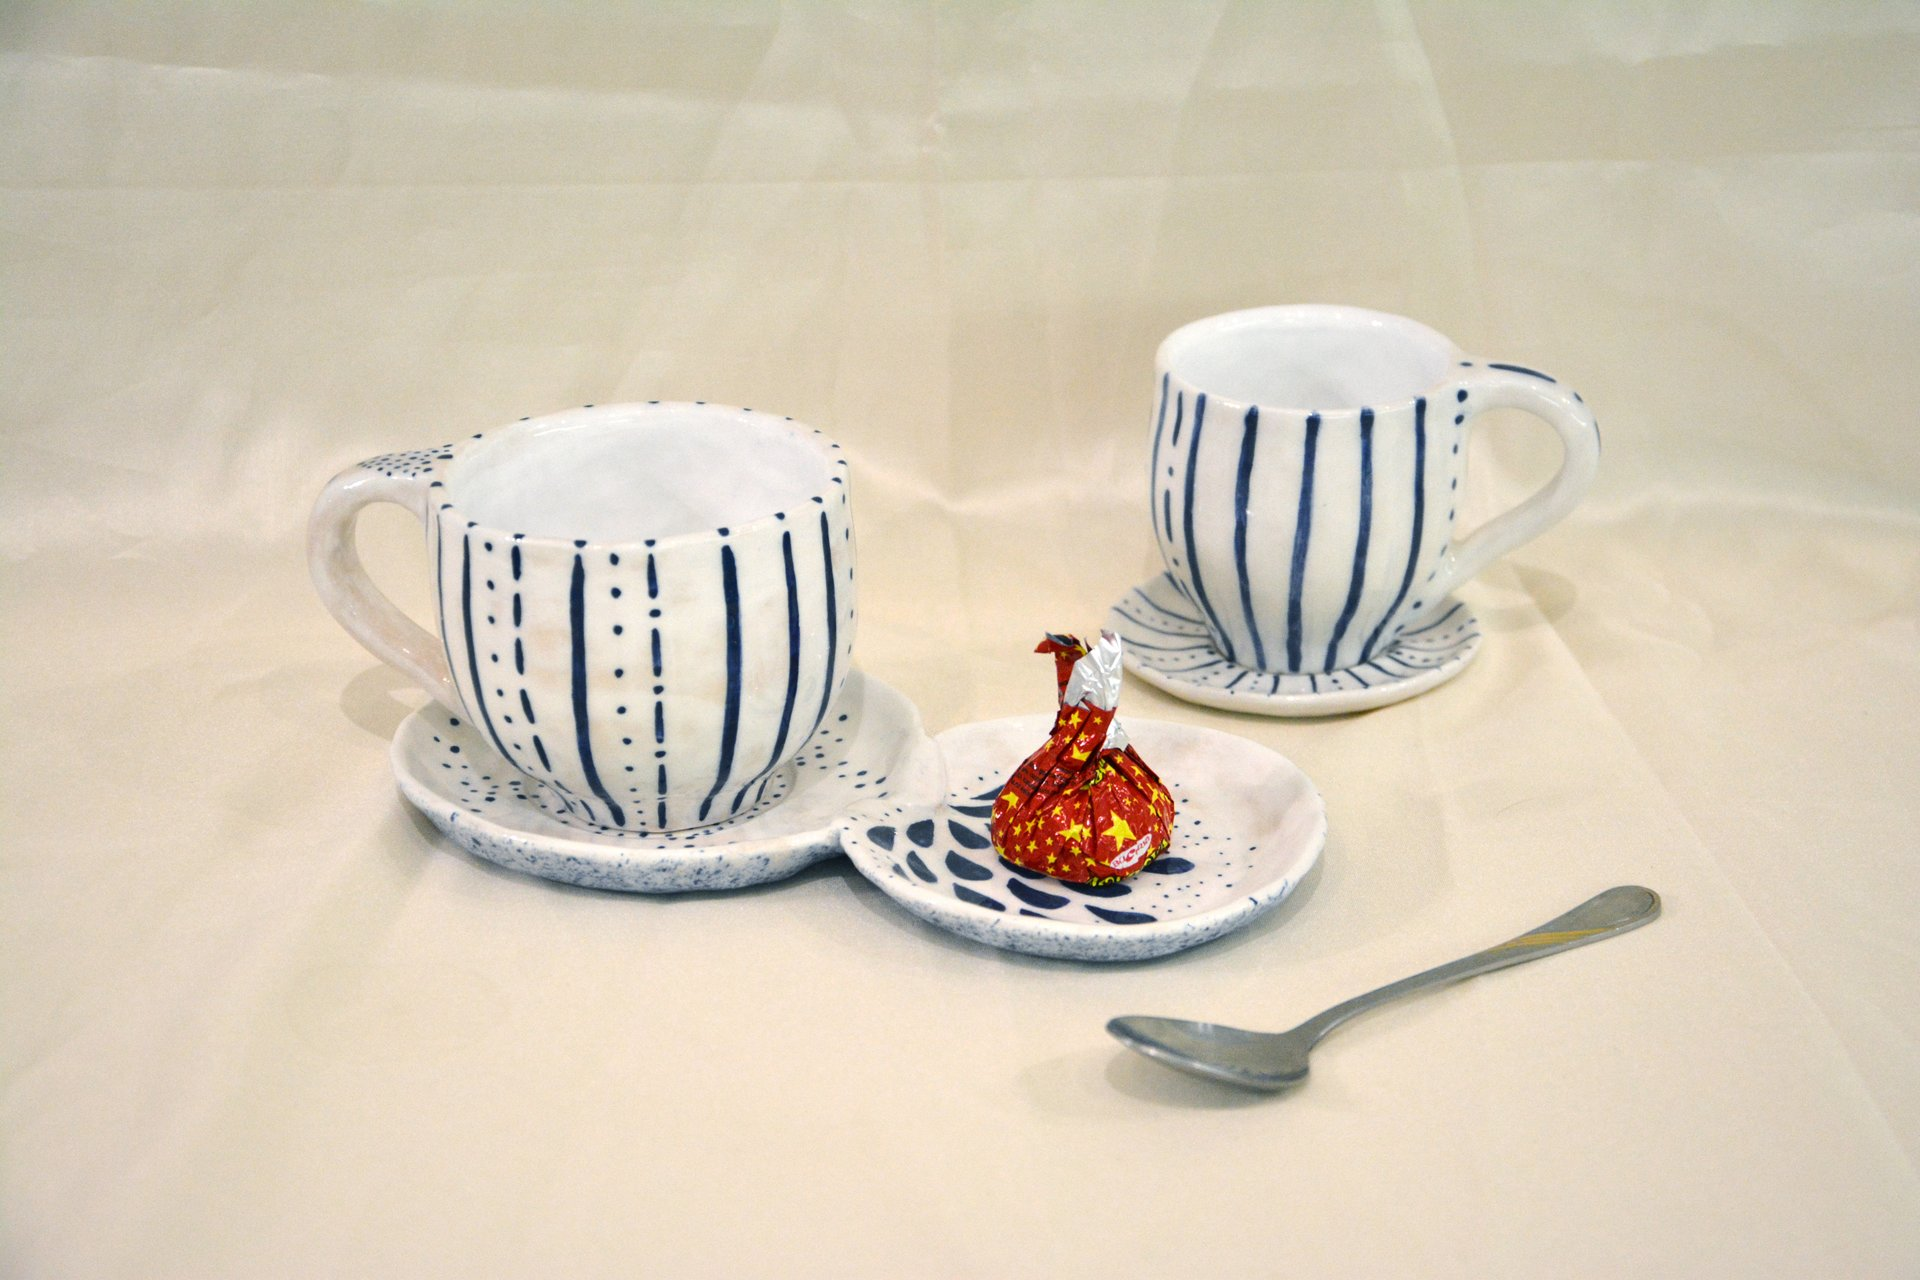 A pair of white cups with a blue pattern Strips — Points - Cups, glasses, mugs, 250 ml and 150 ml, photo 3 of 3.